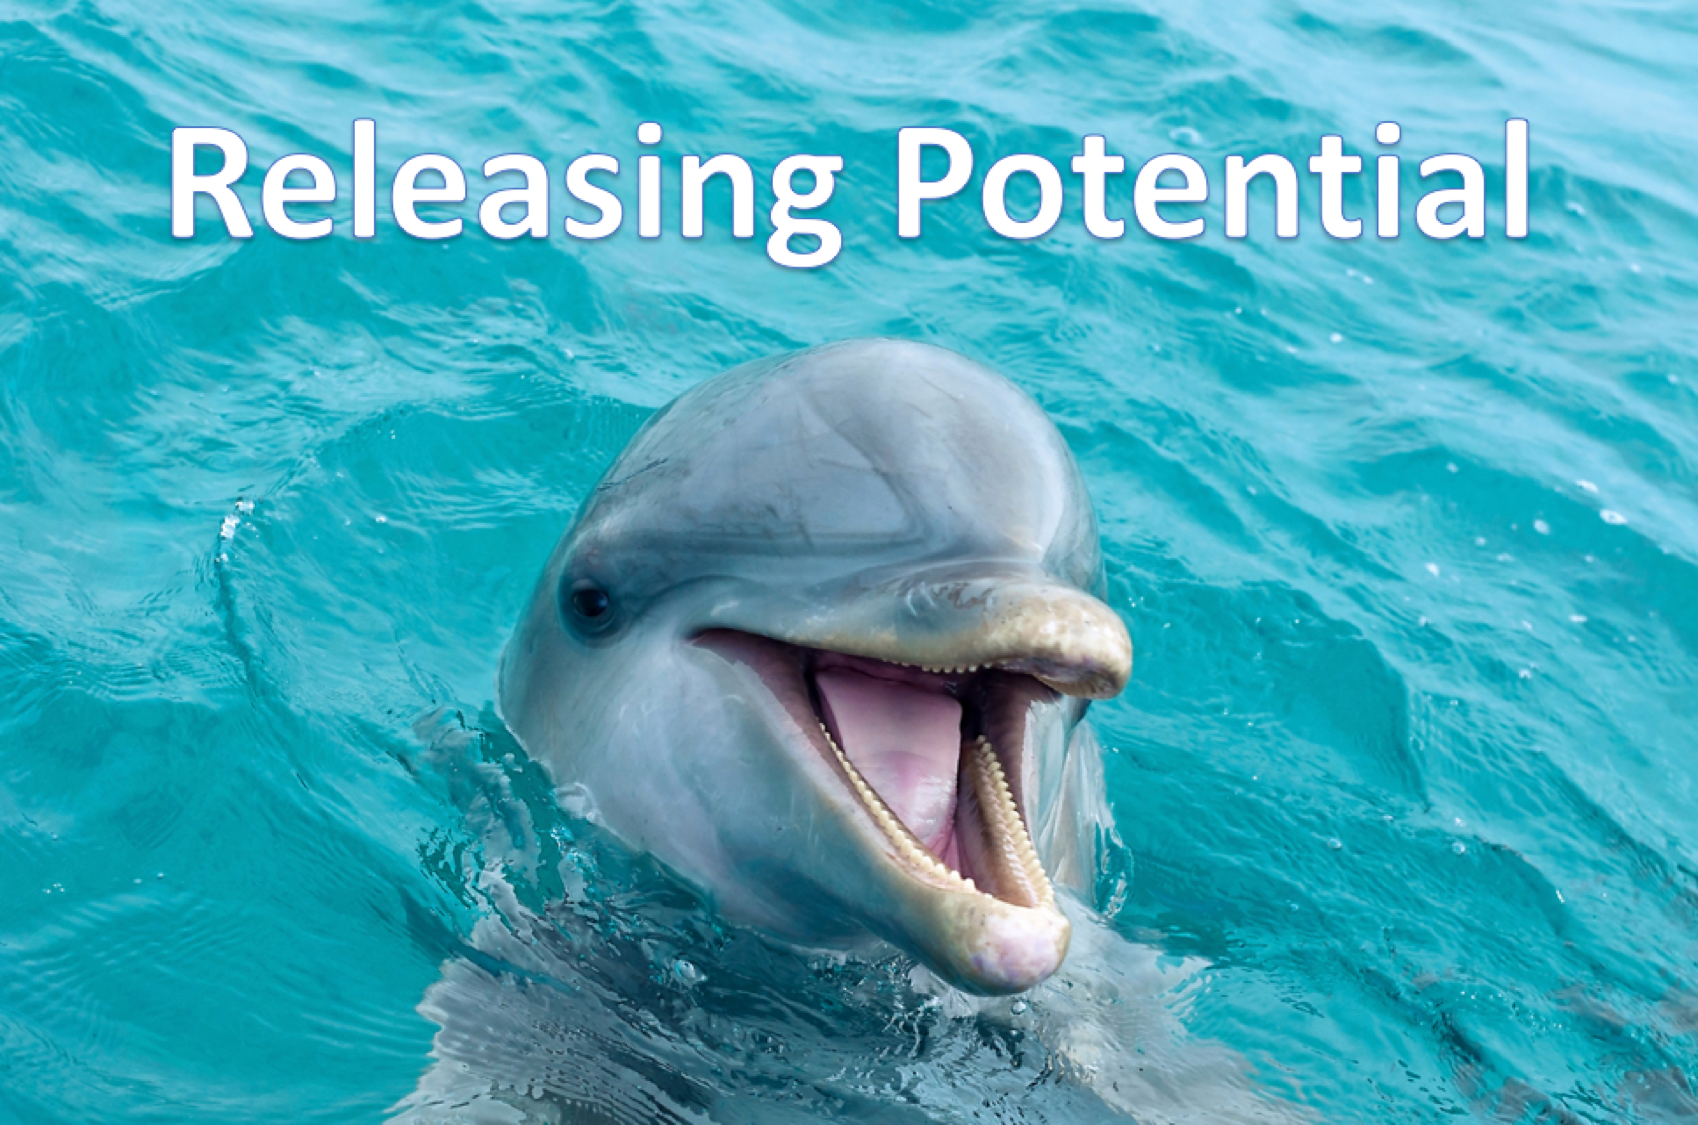 release potential